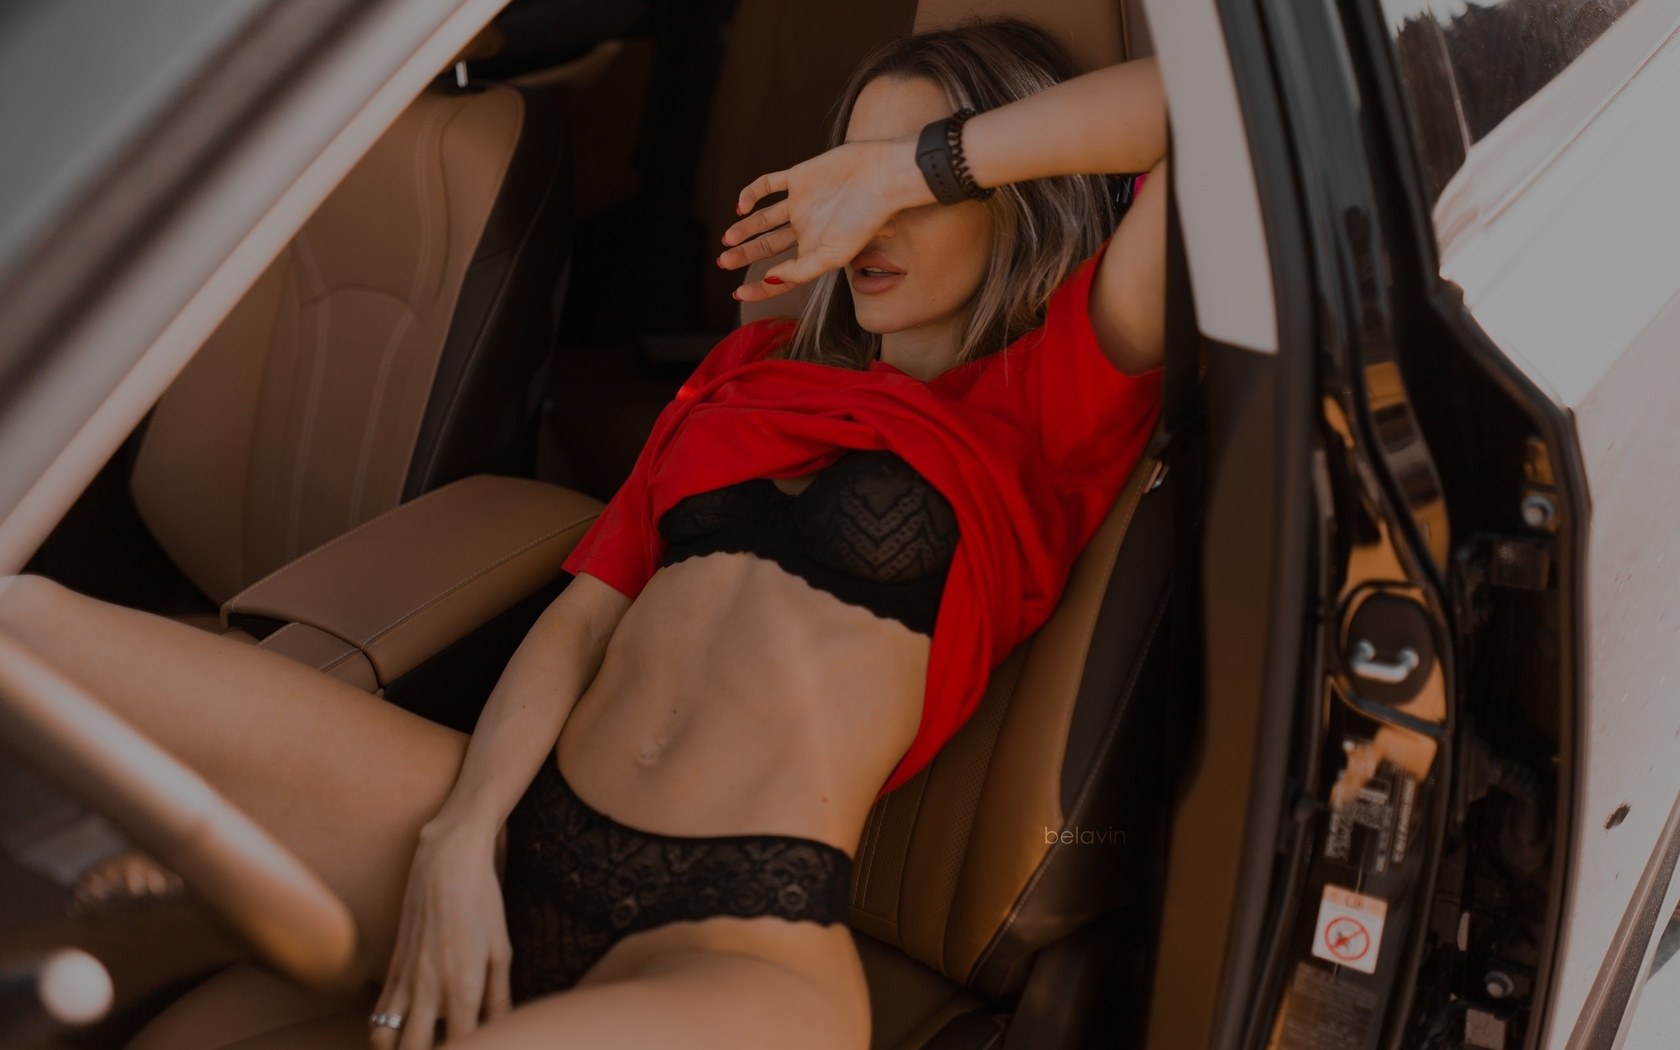 women, alexander belavin, sitting, red nails, belly, black lingerie, women with cars, car, brunette, red t-shirt, watch